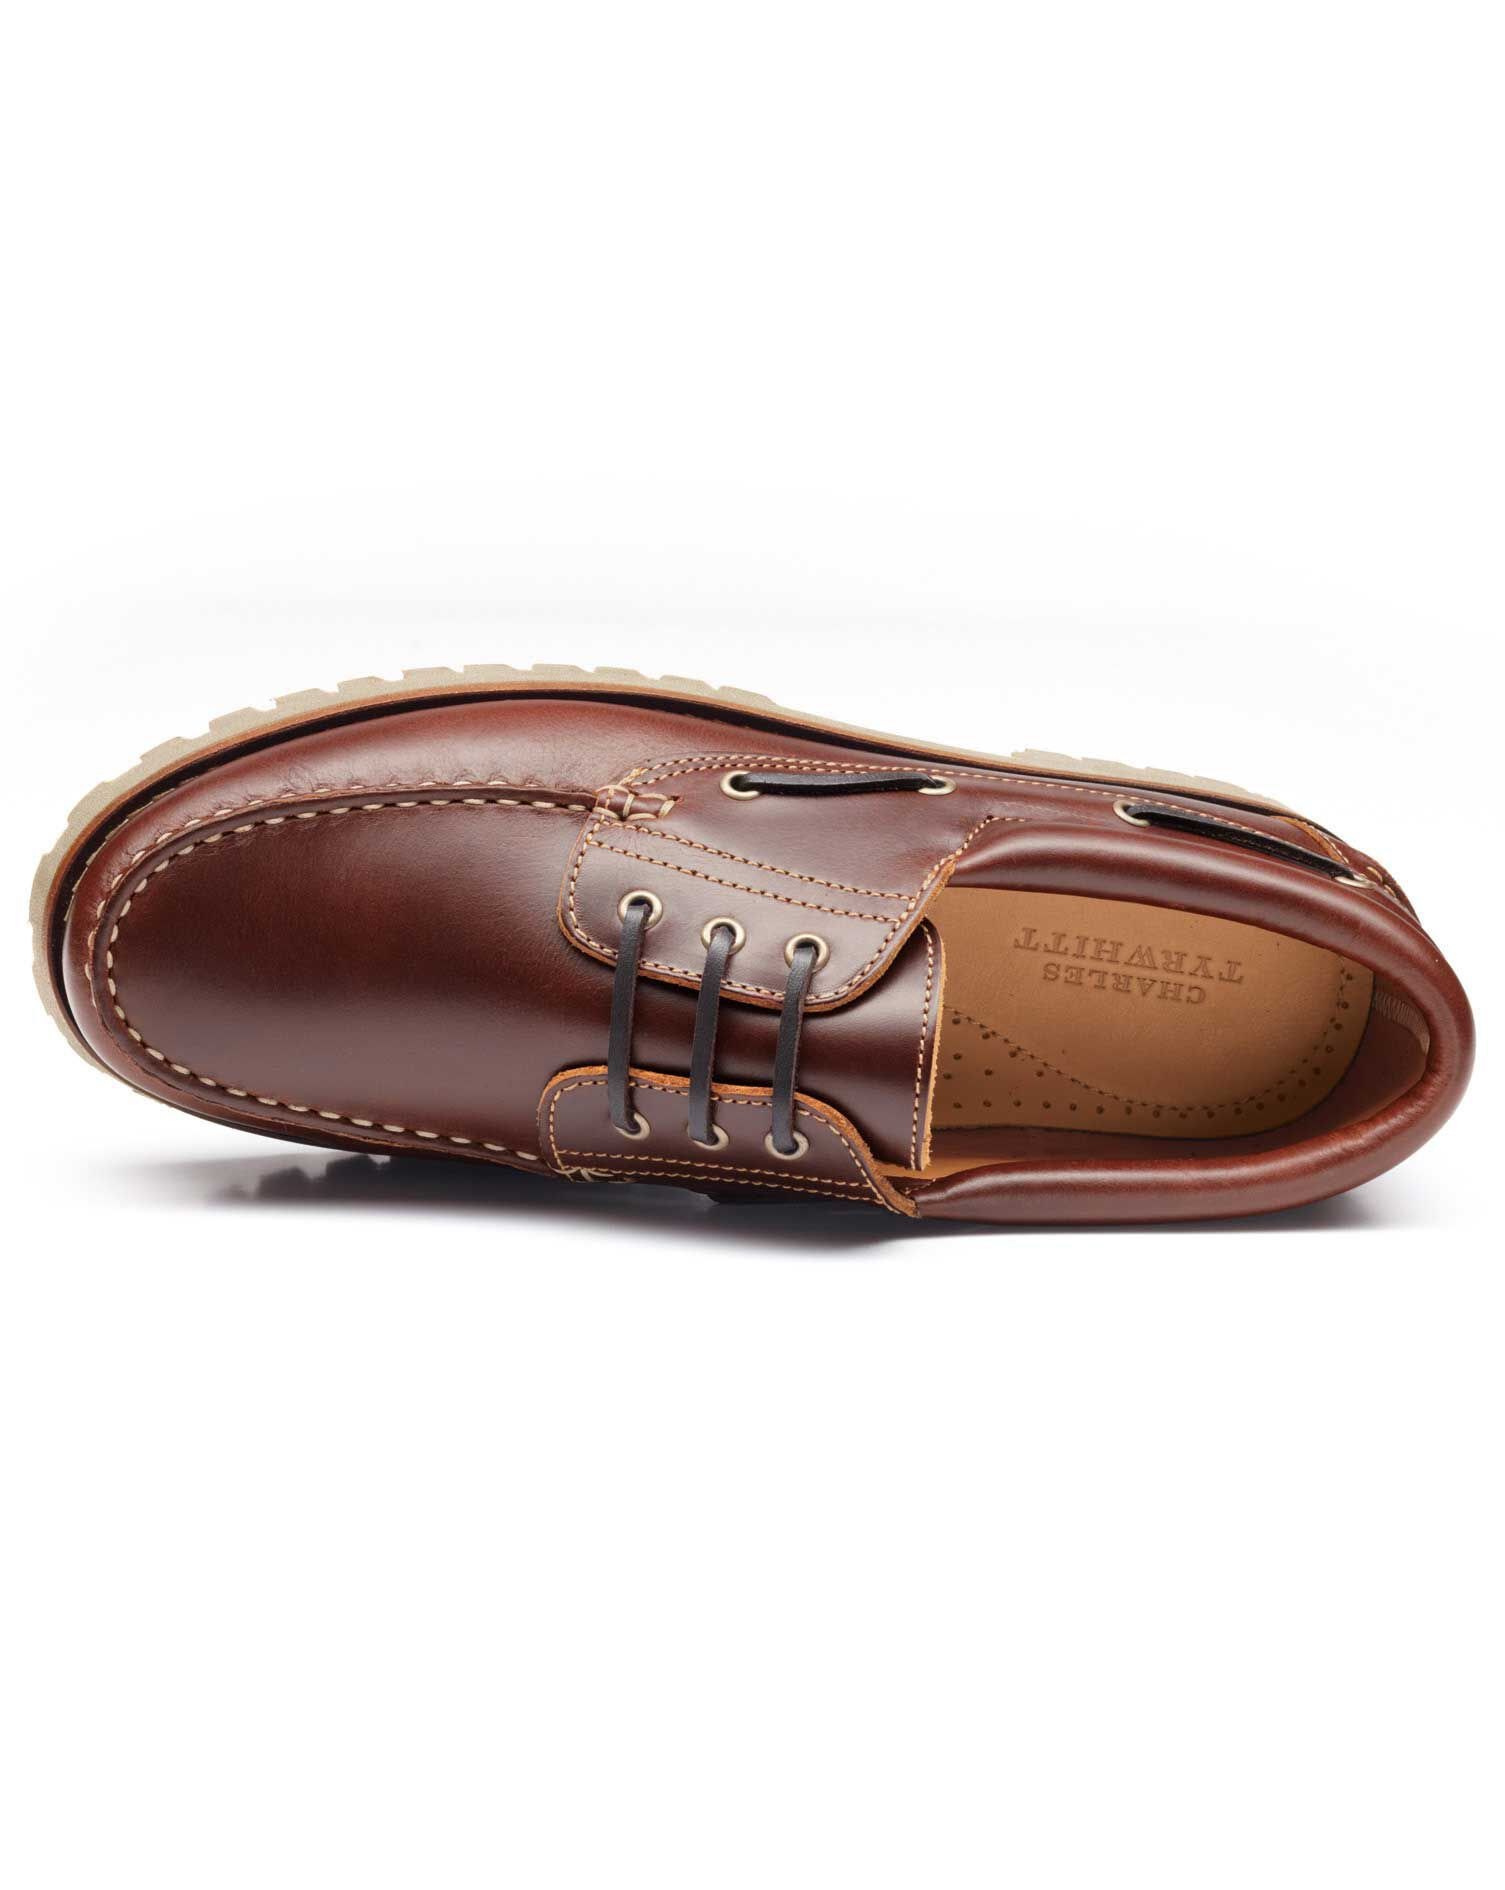 Brown Stamford Boat Shoes Size 9.5 by Charles Tyrwhitt